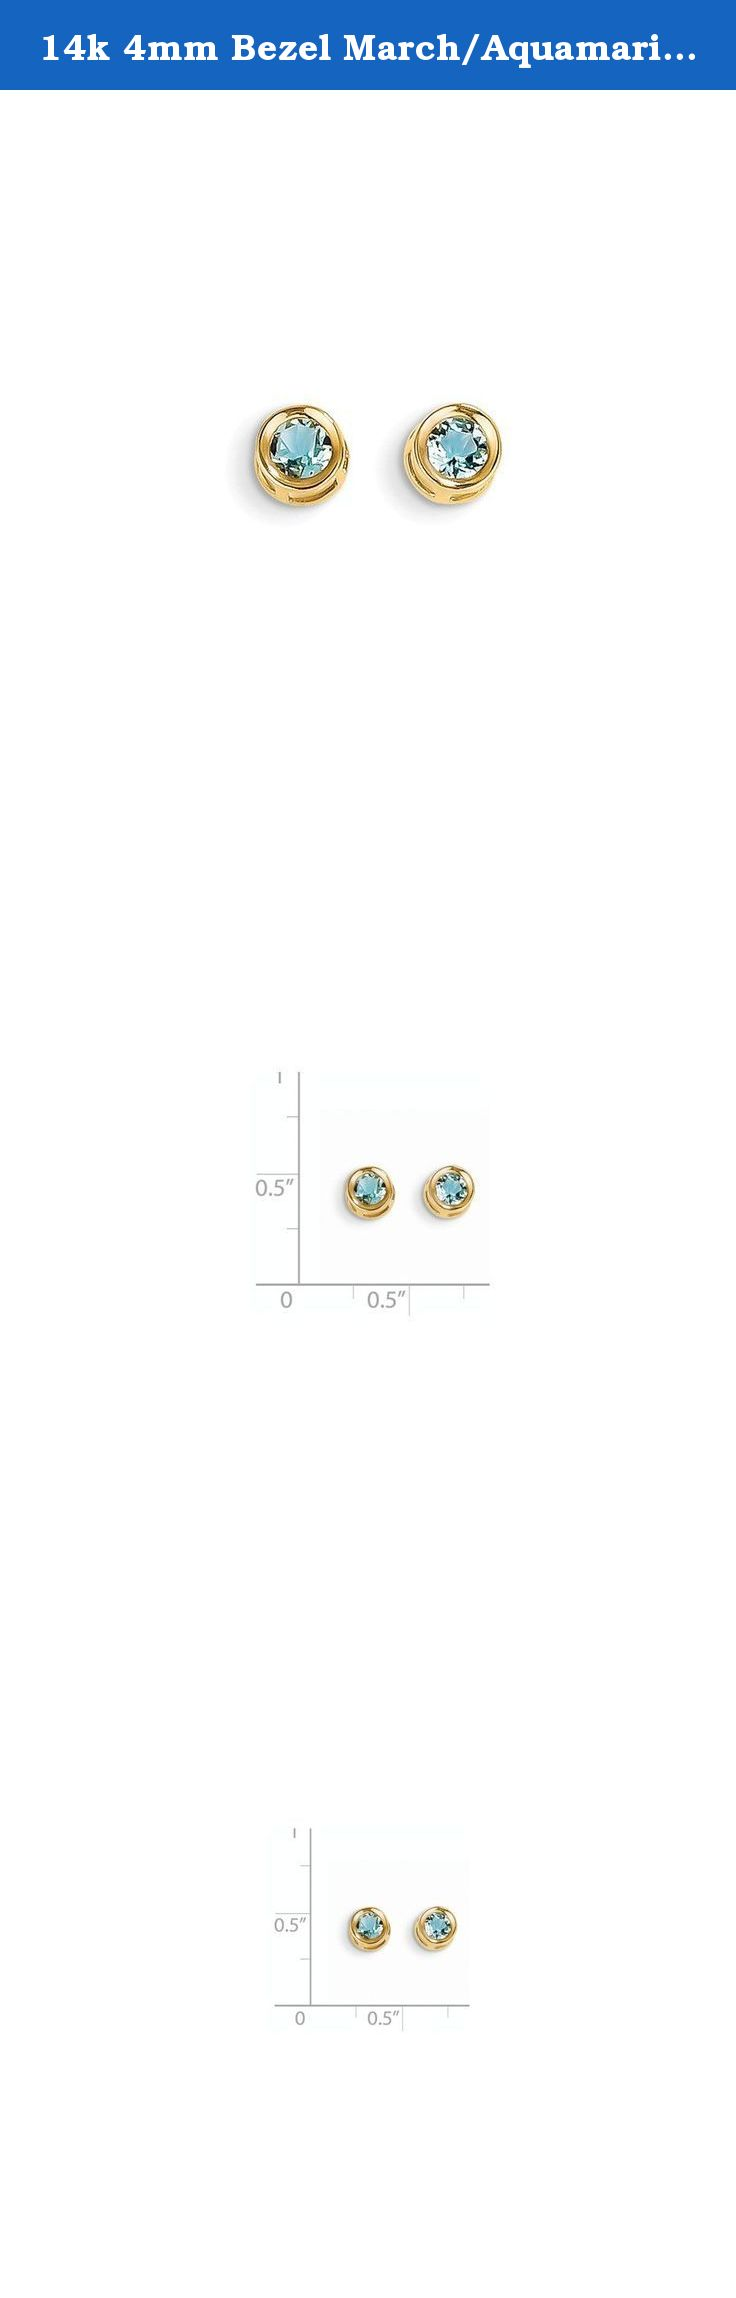 14k 4mm Bezel March/Aquamarine Post Earrings, Gem Ctw.0.5. Attributes 14k Yellow gold Post Genuine Aquamarine Bezel Product Description Material: Primary - Purity:14K Stone Type 1:Aquamarine Stone Color 1:Blue Stone Quantity 1:2 Length of Item:5 mm Stone Weight 1:0.250 ct Charm/Element Length:4 mm Charm/Element Width:4 mm Material: Primary:Gold Stone Shape 1:Round Stone Size 1:4.00 mm Stone Treatment 1:Heating Width of Item:5 mm Product Type:Jewelry Jewelry Type:Earrings Sold By Unit:Pair...